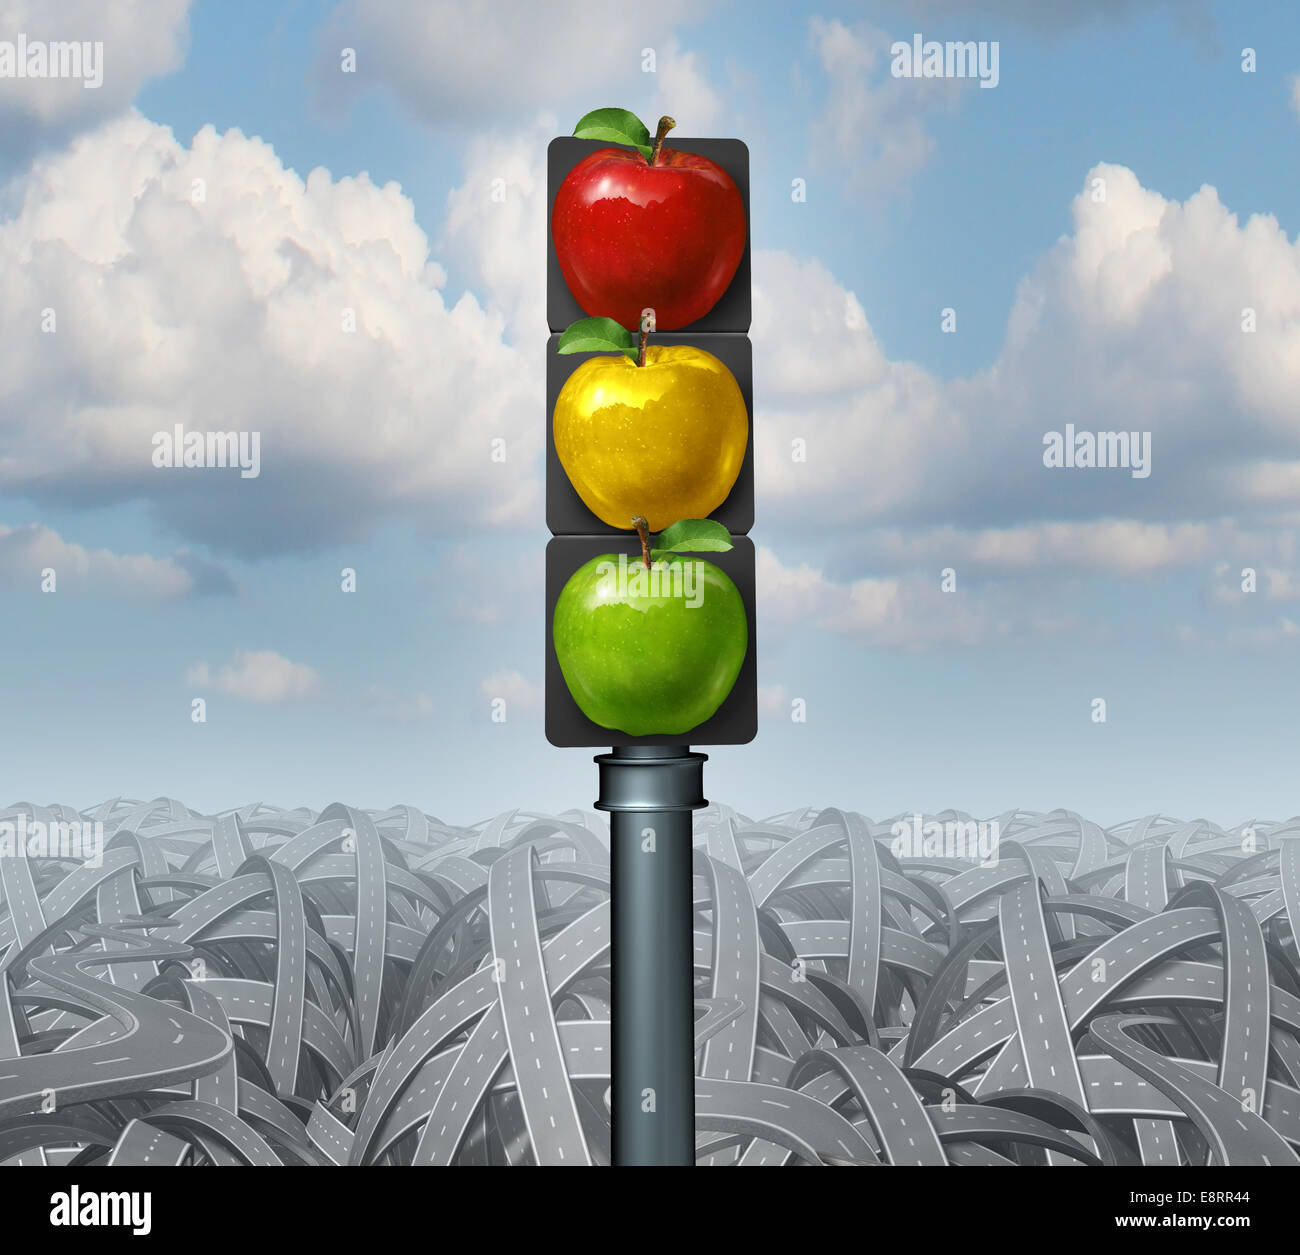 Healthy lifestyle advice and eat healthy concept as traffic lights with green yellow and red apples on a background - Stock Image